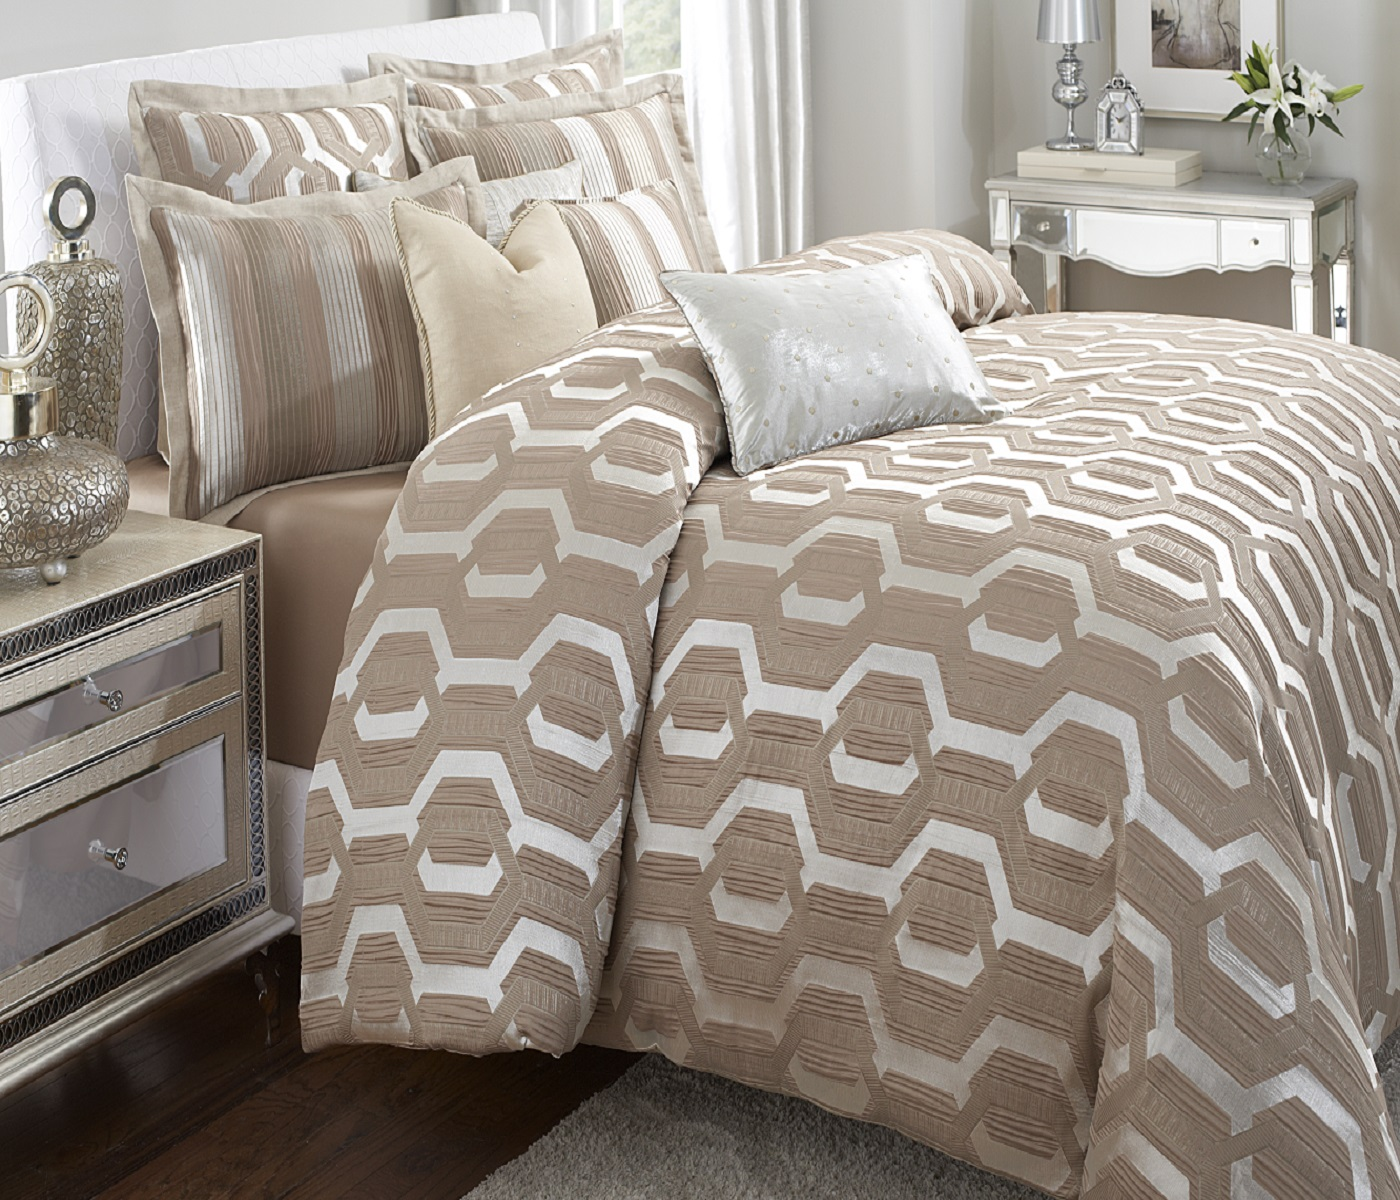 Contemporary luxury bedding set ideas homesfeed - Look contemporary luxury bedding ...